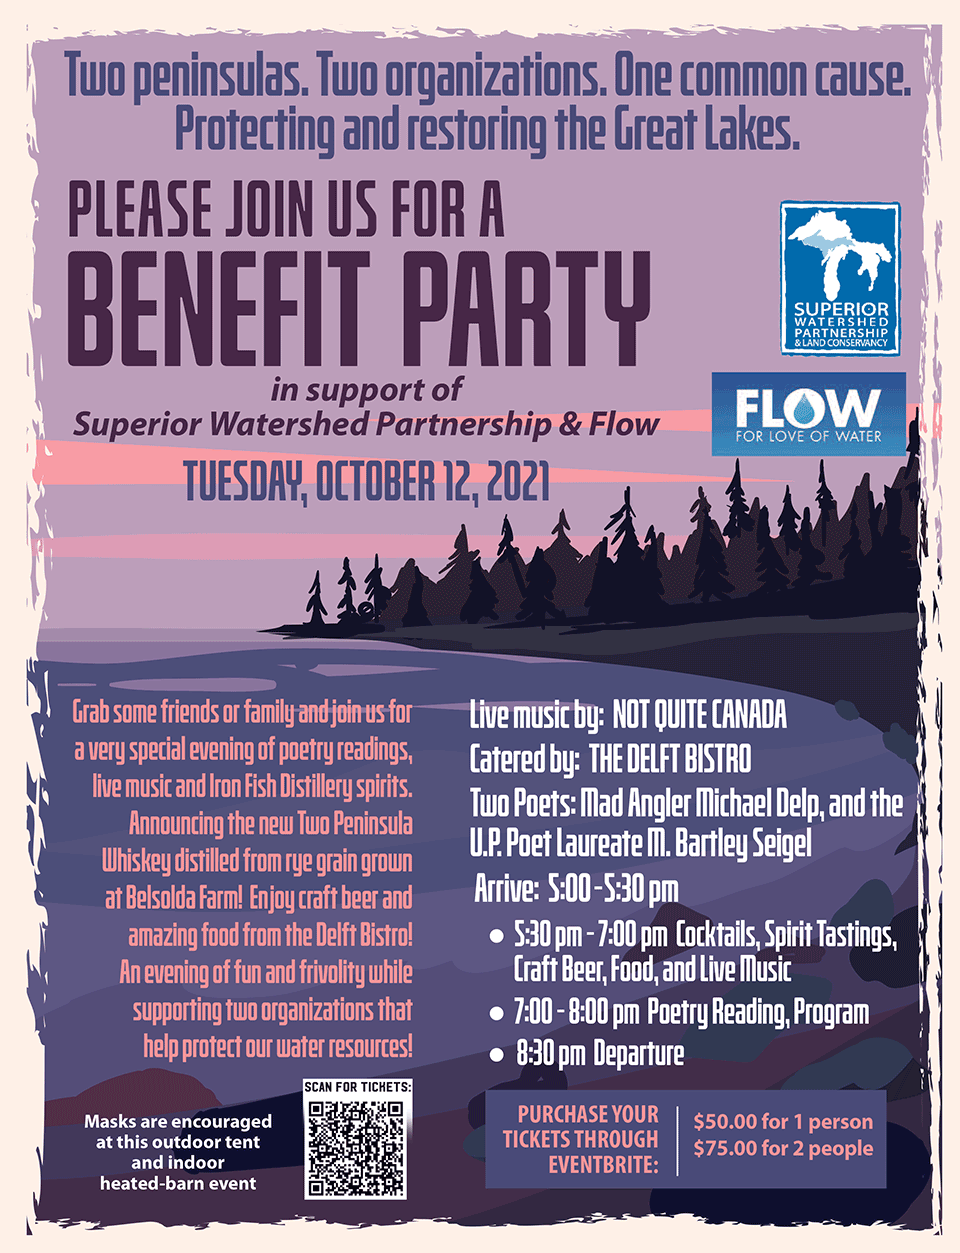 swp-flow-benefit-party-poster-v2